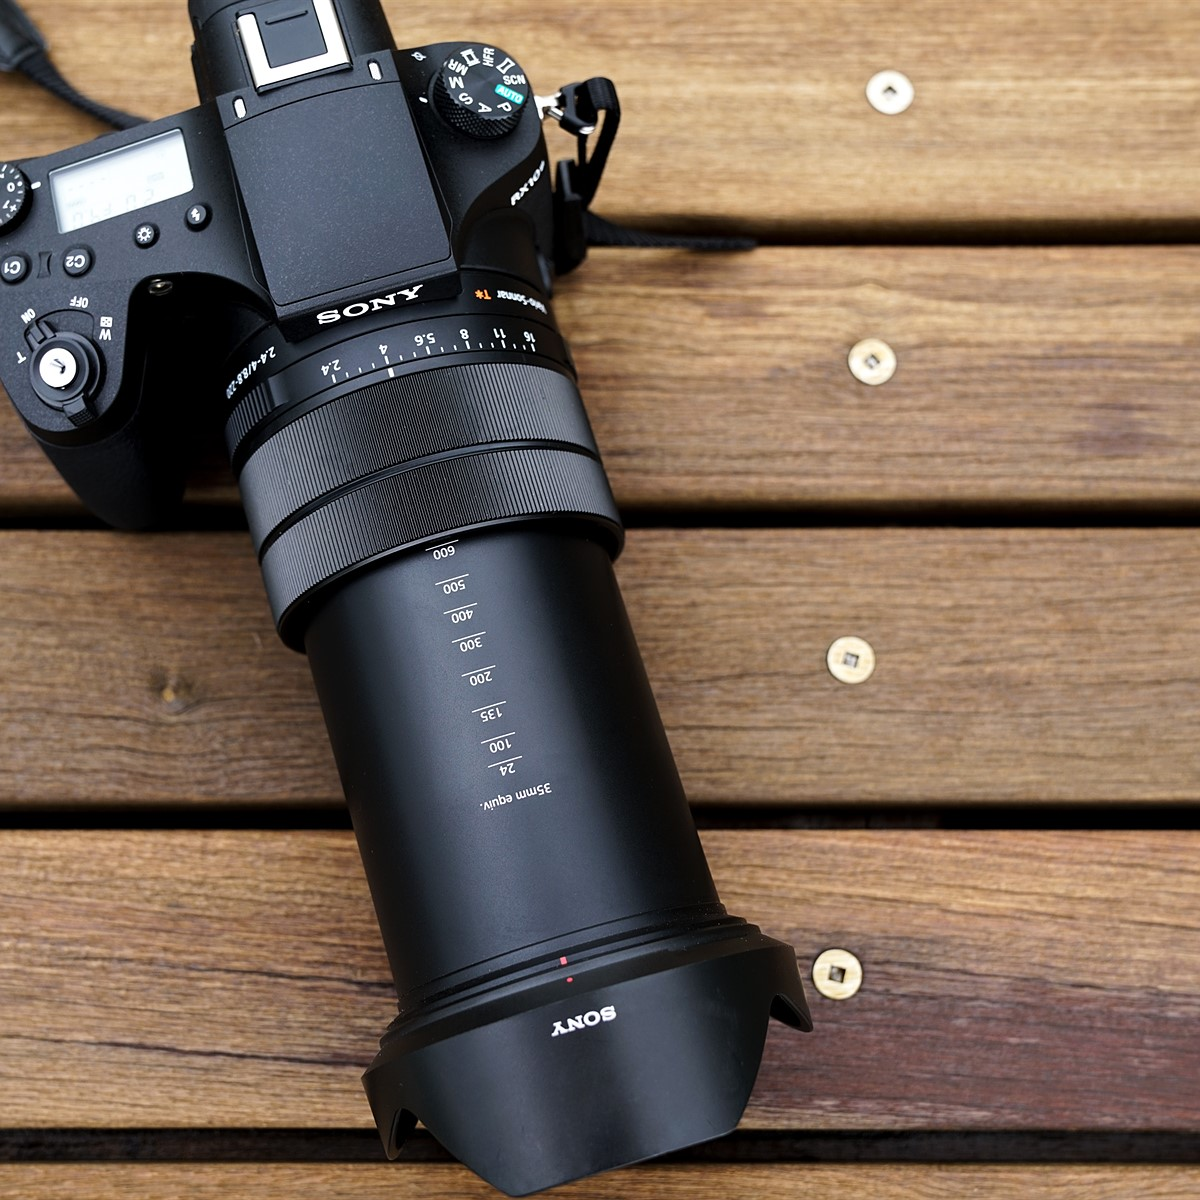 Lens shootout: Sony RX10 III destroys the competition: Digital